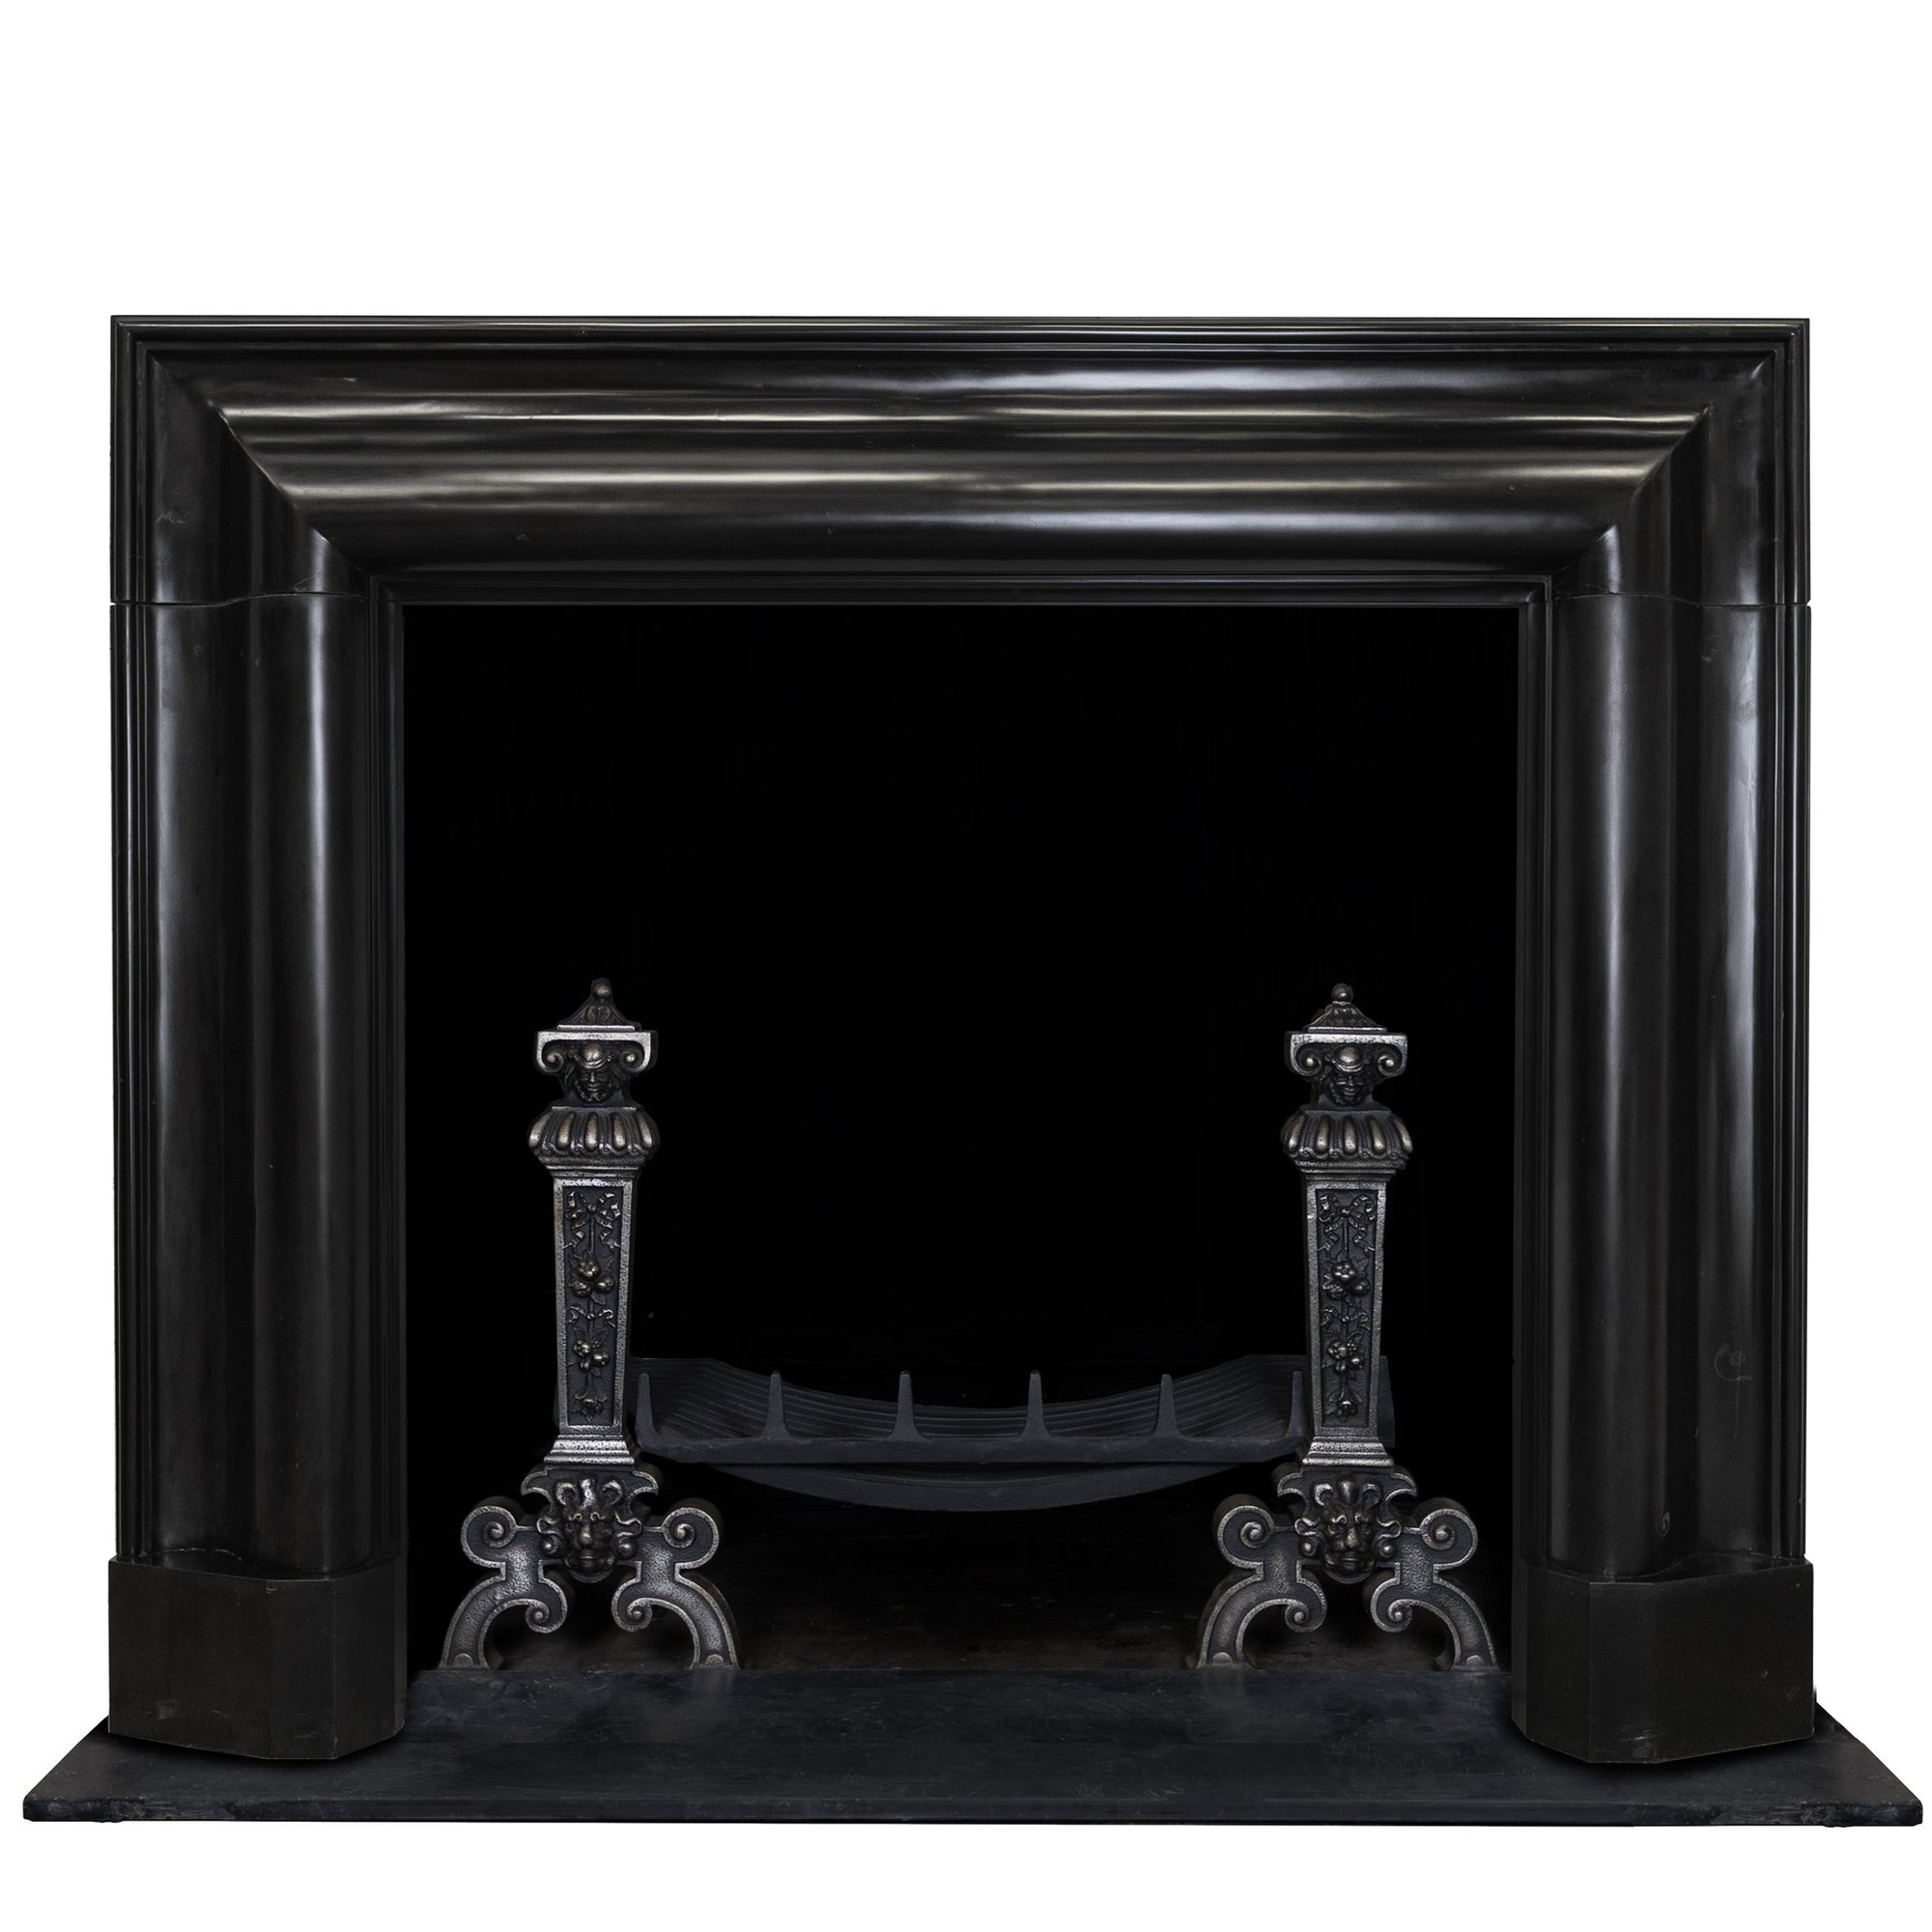 Reclaimed Belgian Black Marble Bolection Chimneypiece with Fossil Inclusions | The Architectural Forum